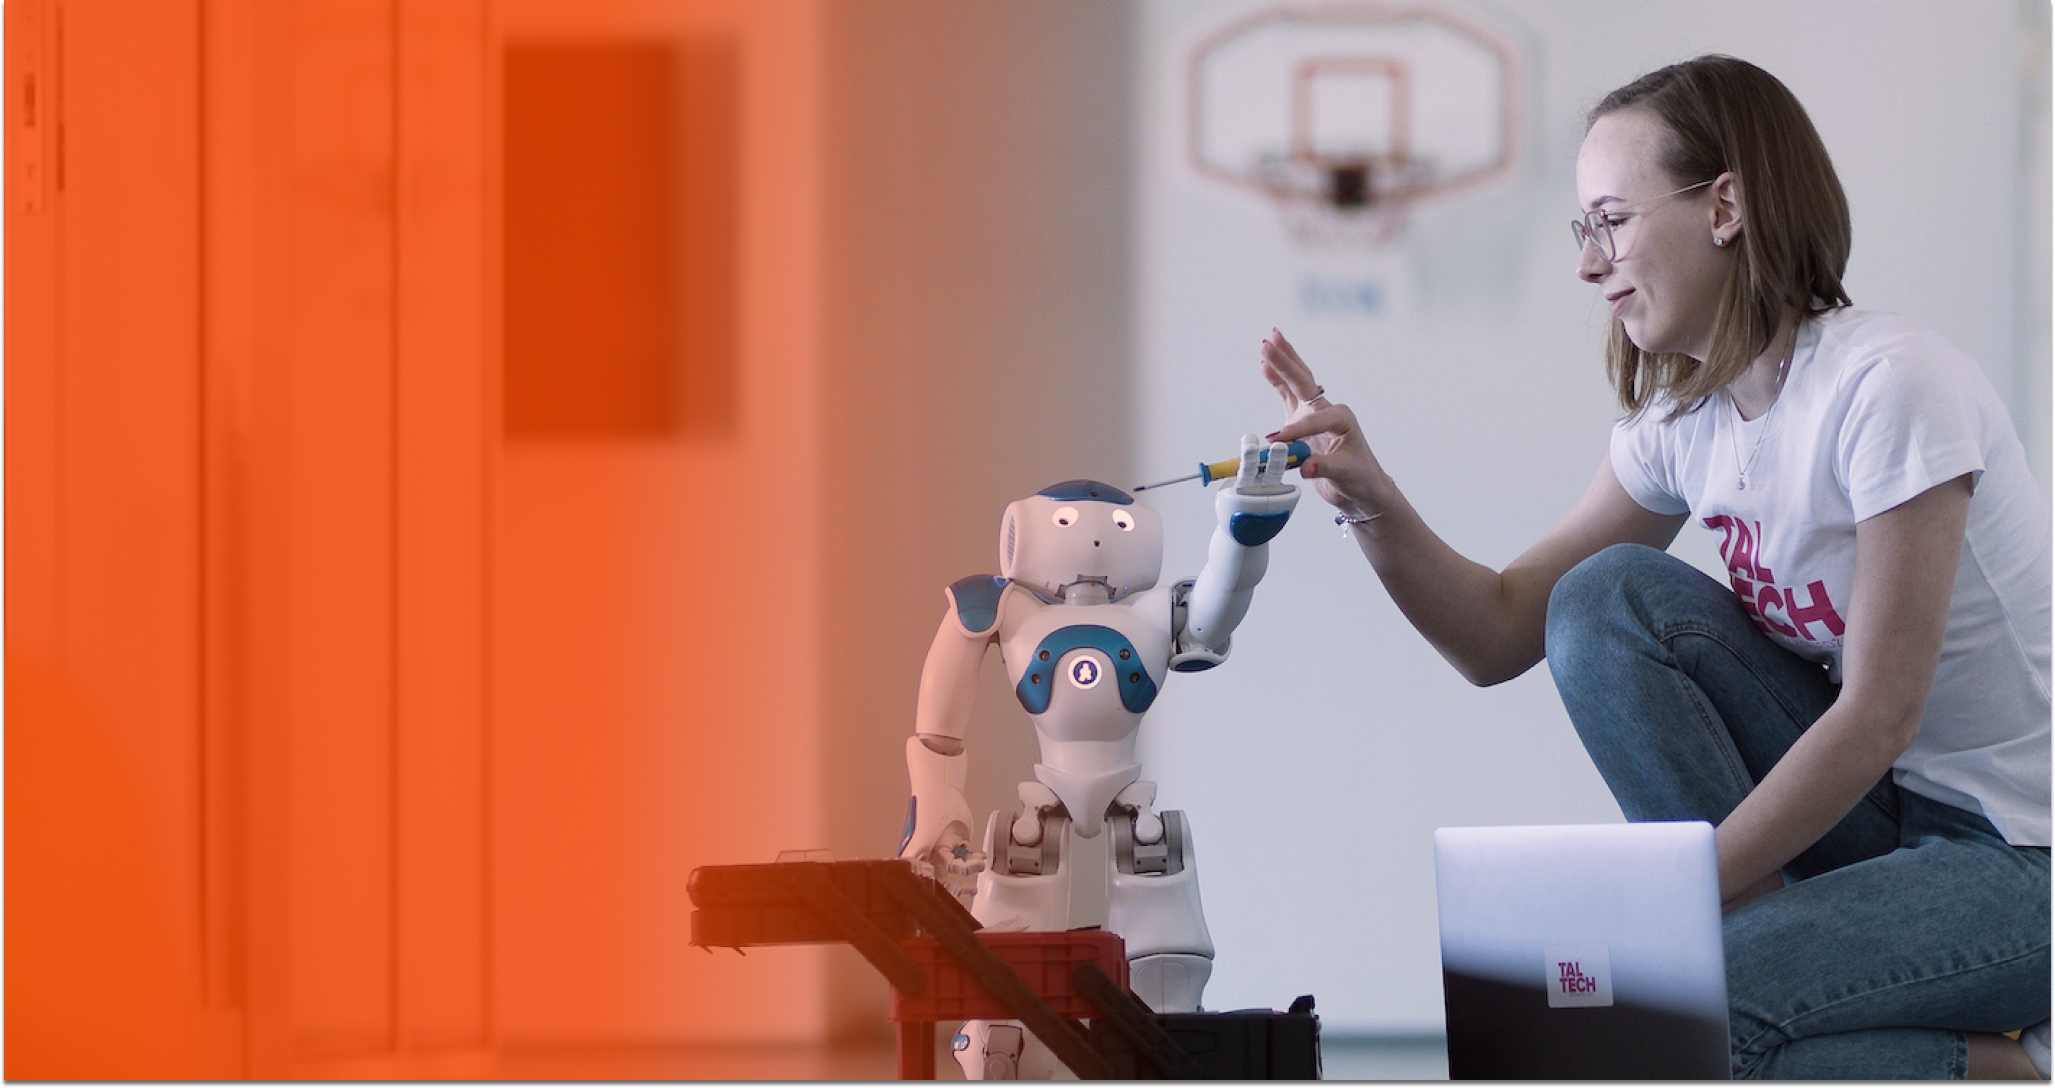 A womand and a small robot interacting.